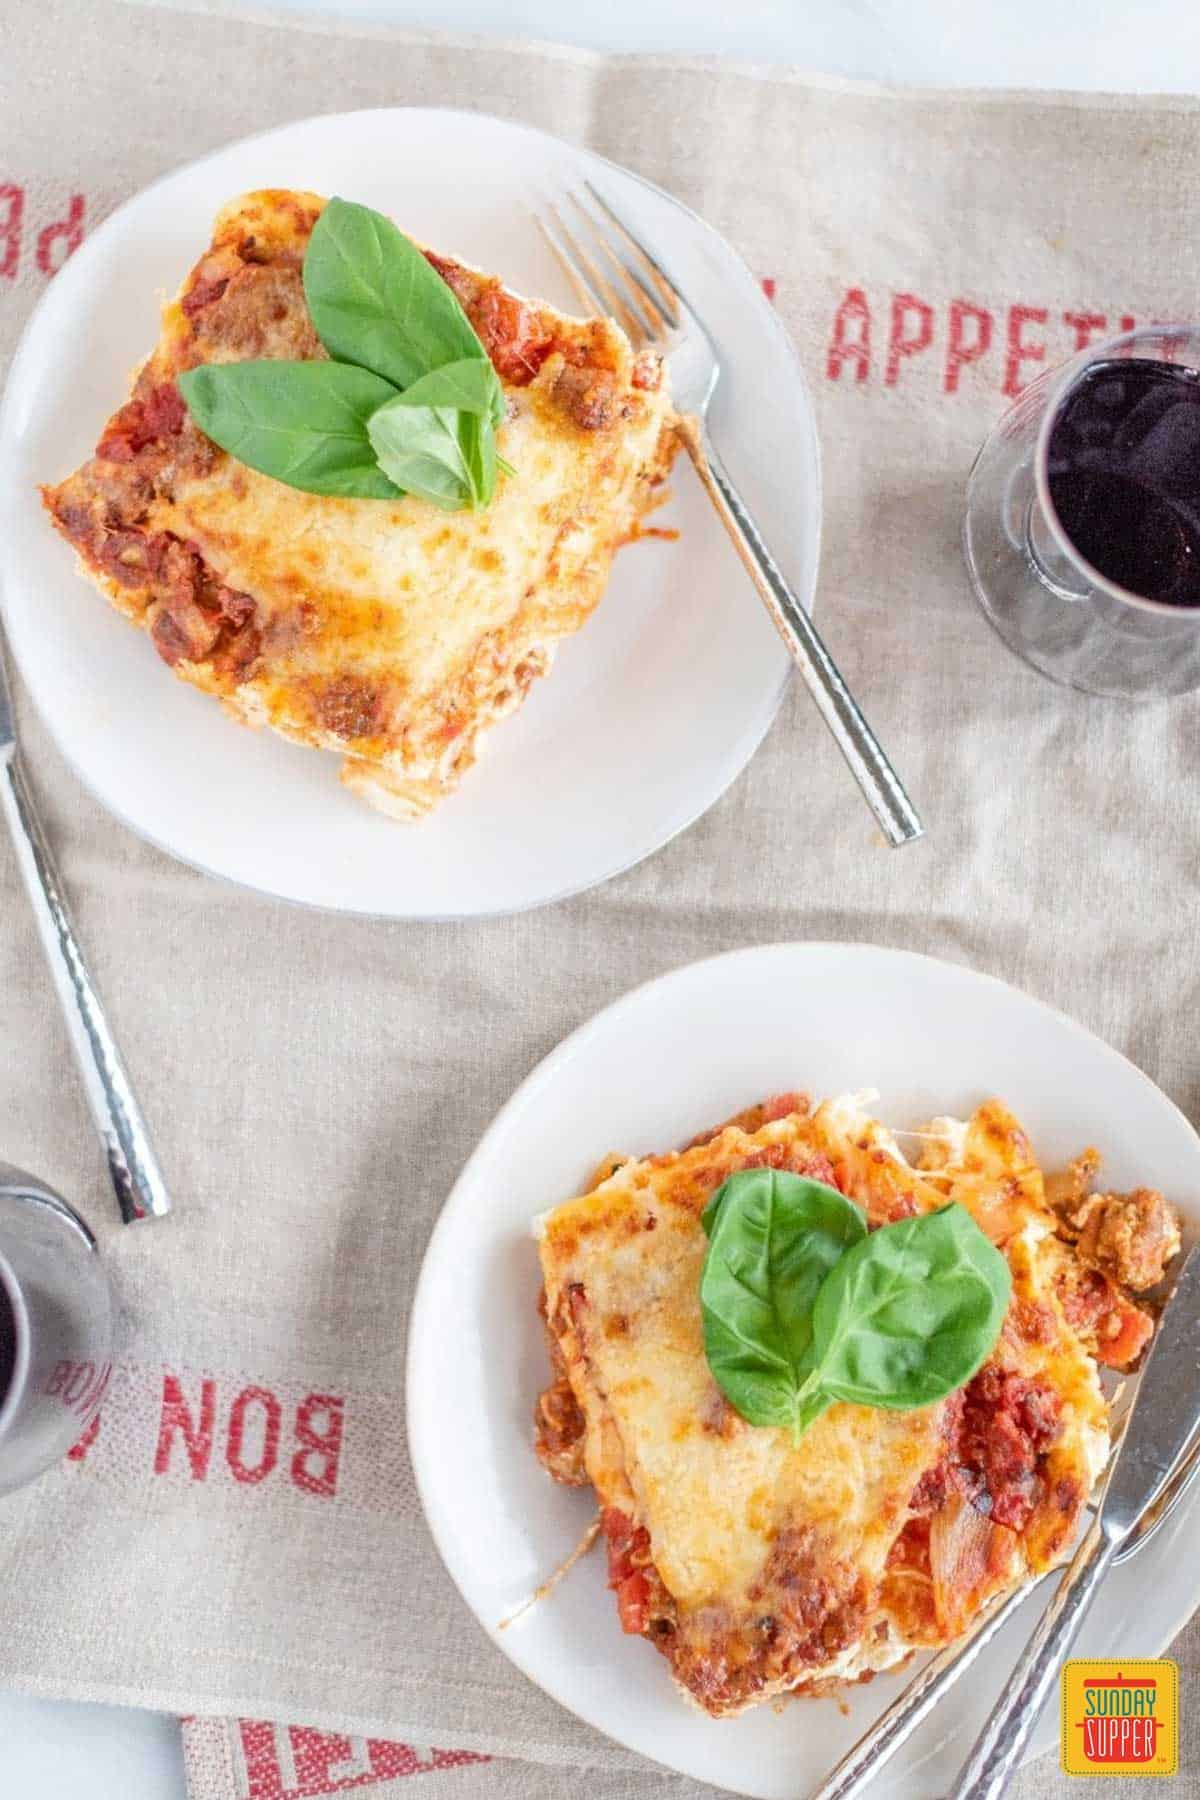 Simple dinner ideas for two: two plates of lasagna